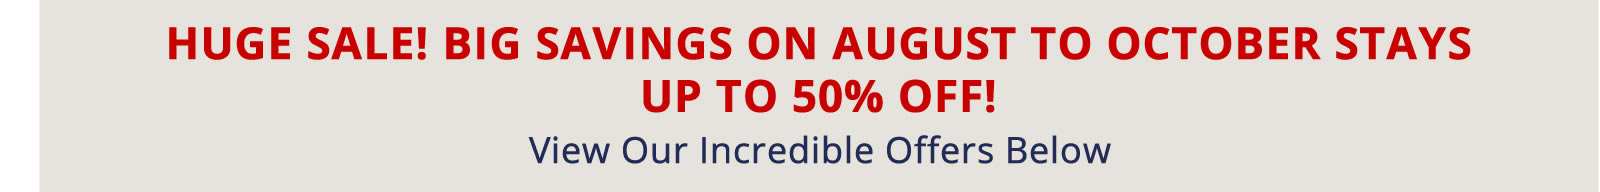 Book Now for Big Savings on August to October Stays. Up to 50% off!